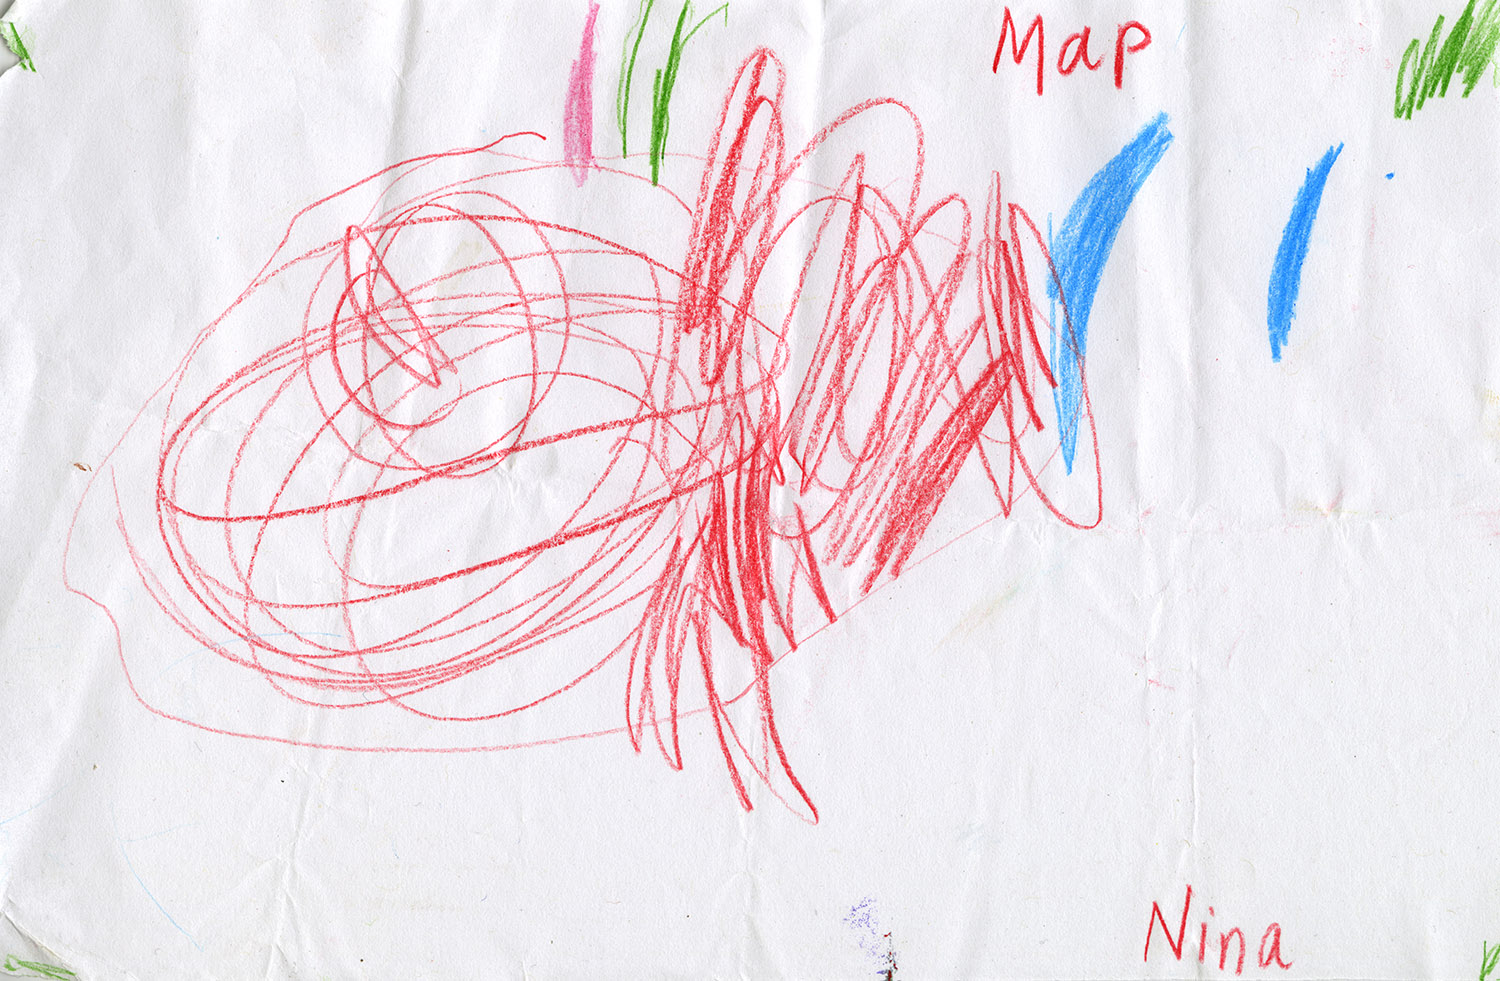 Preschooler's map, found by Jac Nelson , Nina, Portland, OR (2015)